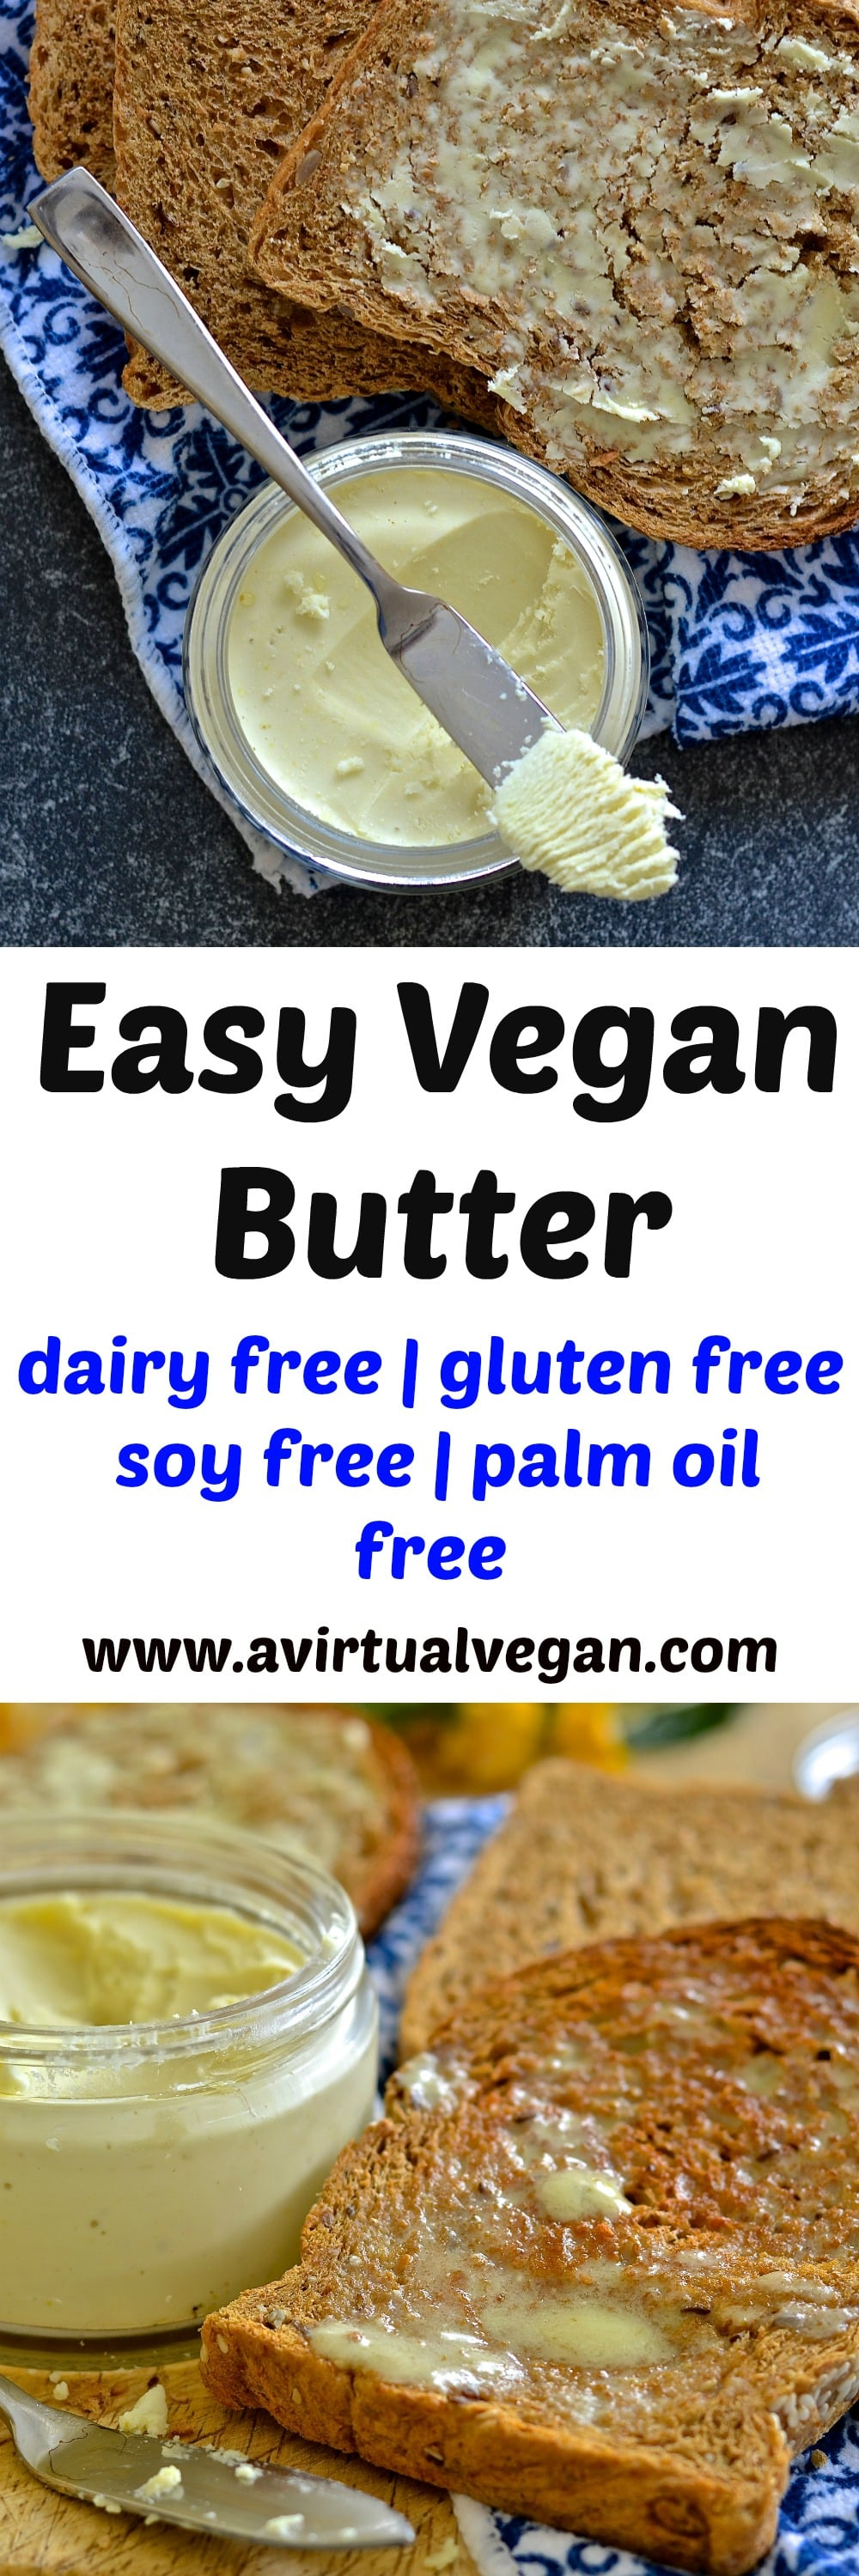 If you love butter but hate the ingredients in store bought dairy free versions then this vegan butter recipe is the answer to your prayers. It is dreamily smooth, rich & creamy & can be whipped up in minutes. It is also palm oil & emulsifier free & can be used in any way you would use real butter!